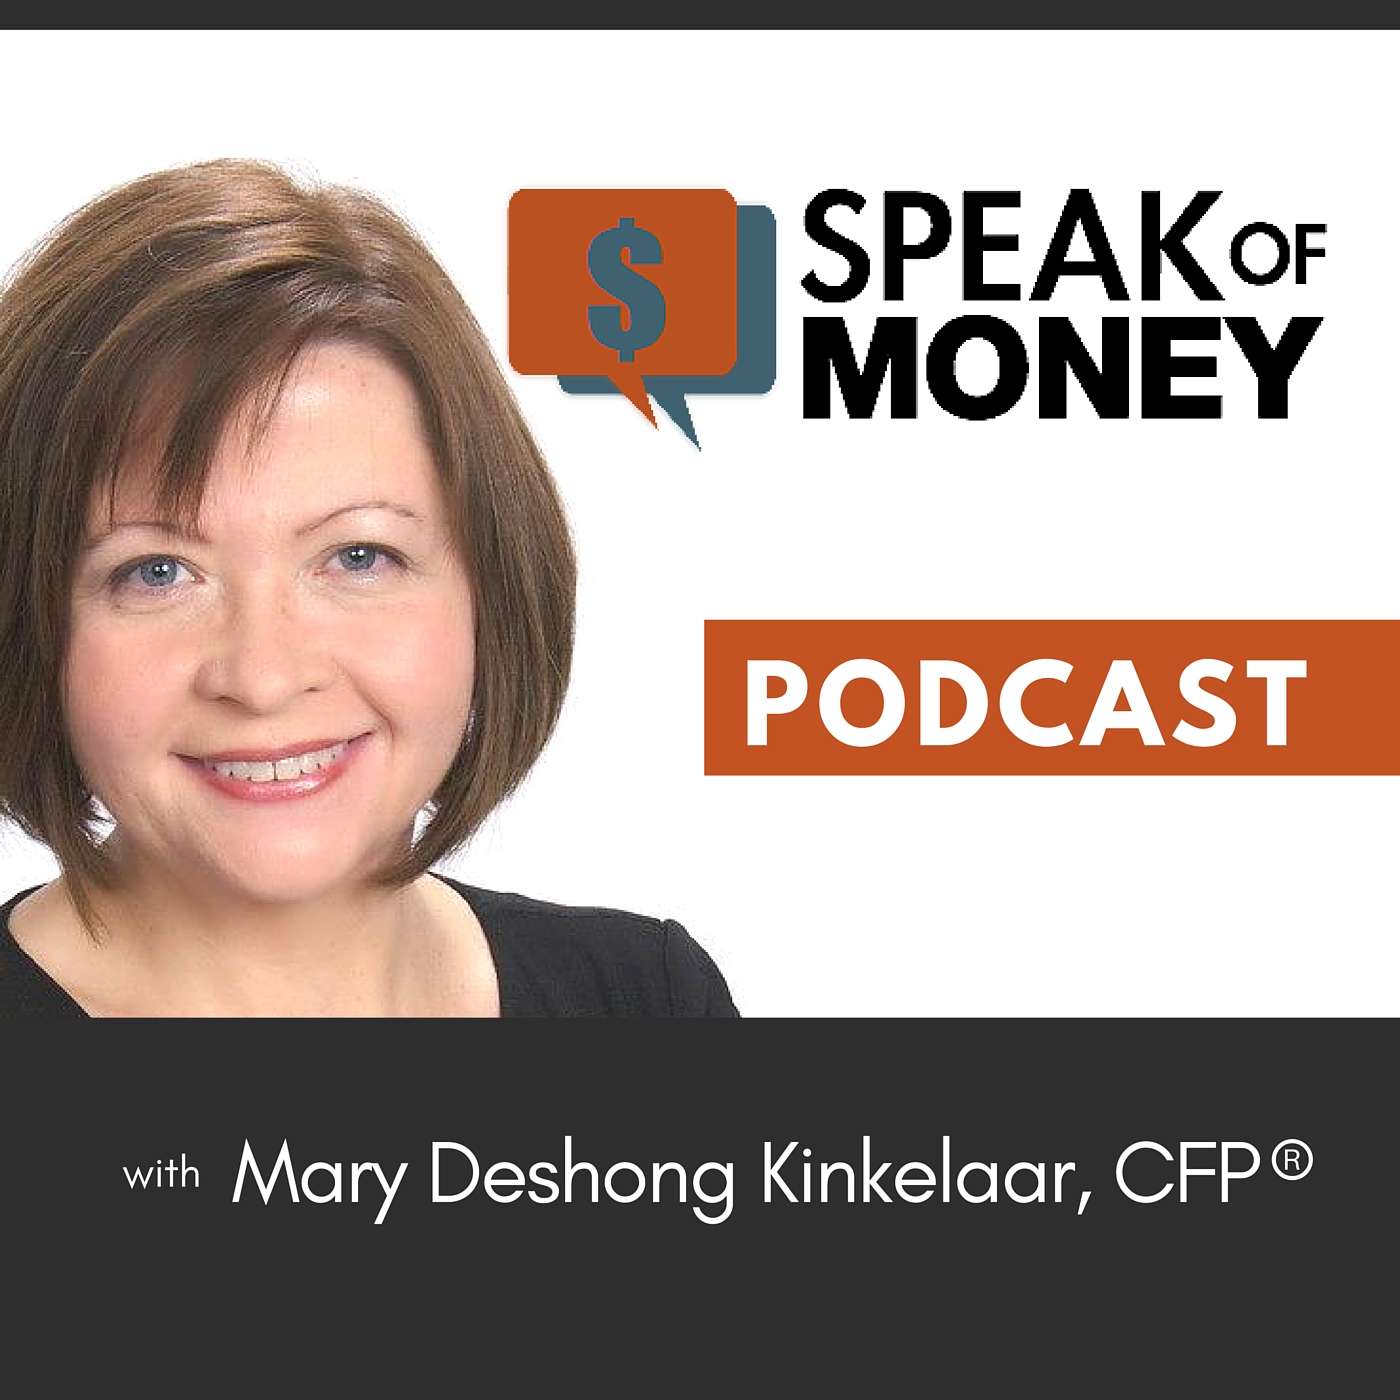 Speak of Money Podcast